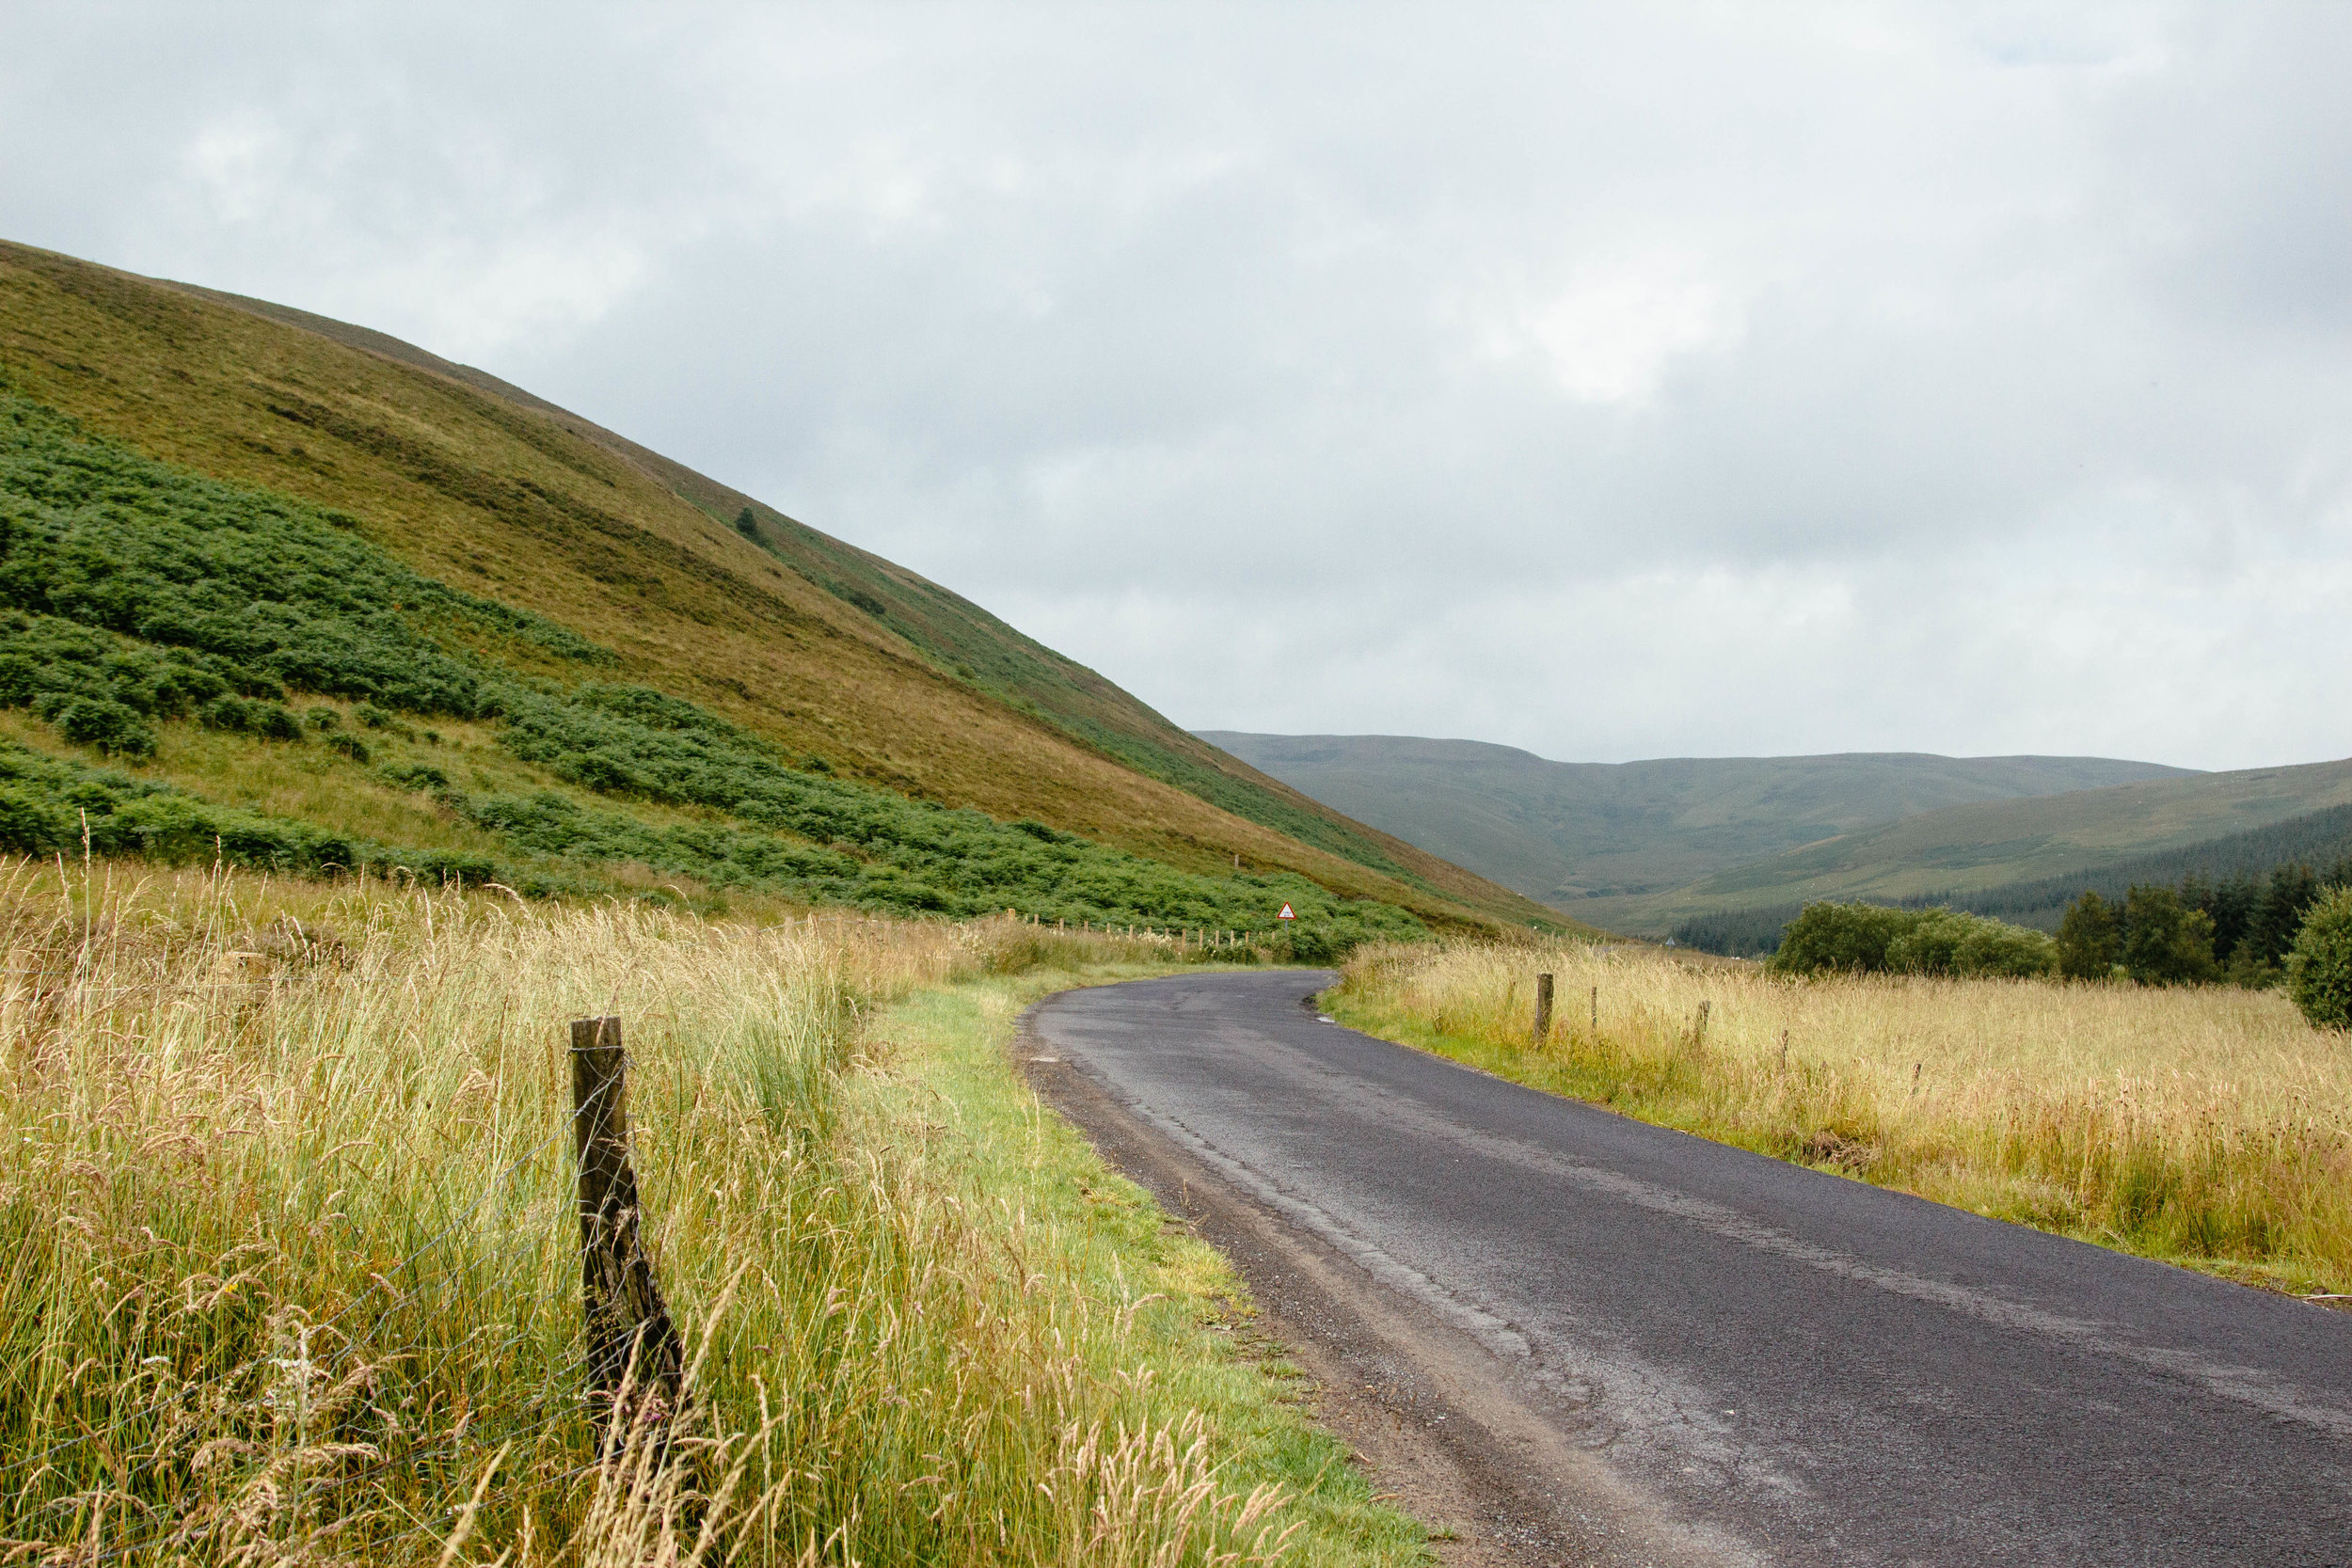 A final glimpse of the Scottish Borders before getting on the motorway